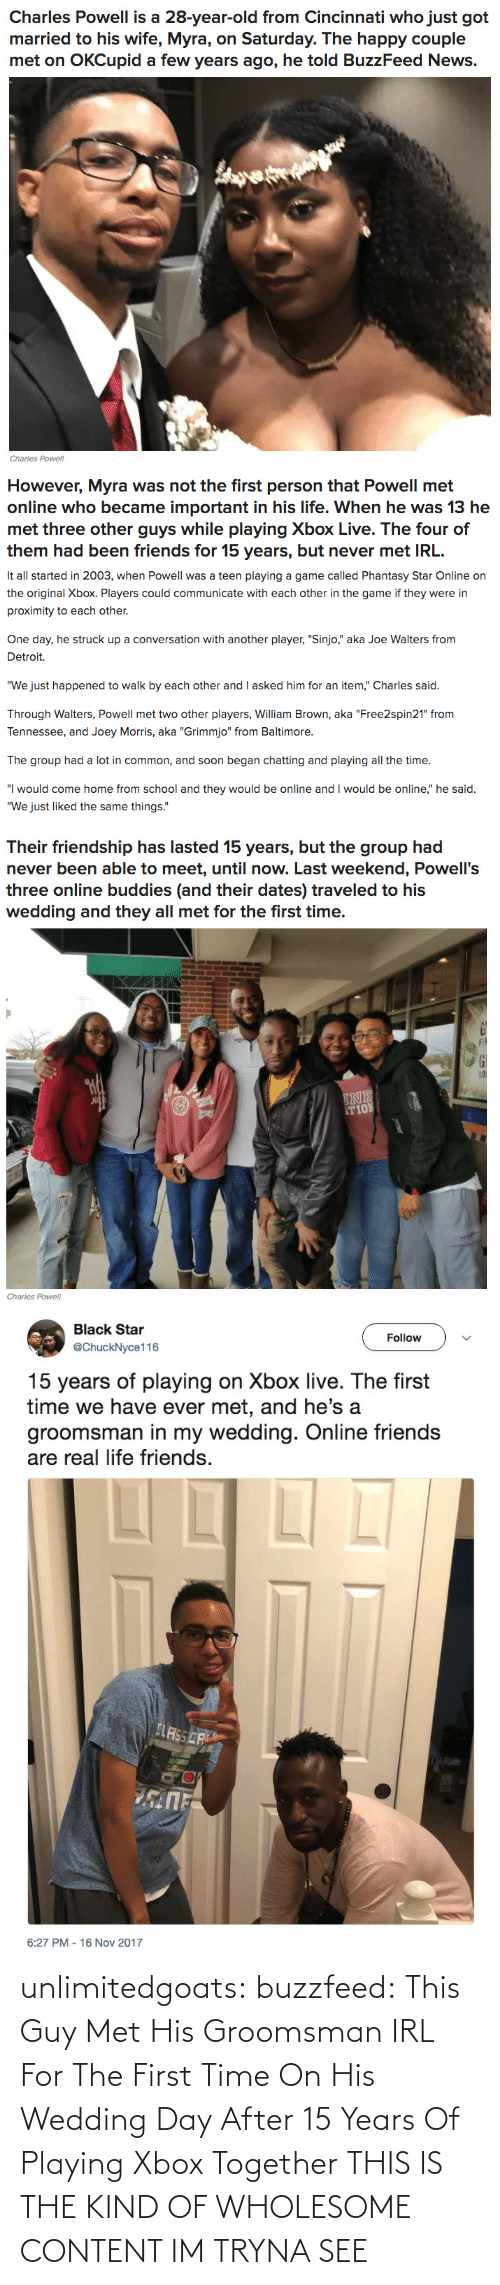 Xbox: unlimitedgoats:  buzzfeed: This Guy Met His Groomsman IRL For The First Time On His Wedding Day After 15 Years Of Playing Xbox Together THIS IS THE KIND OF WHOLESOME CONTENT IM TRYNA SEE